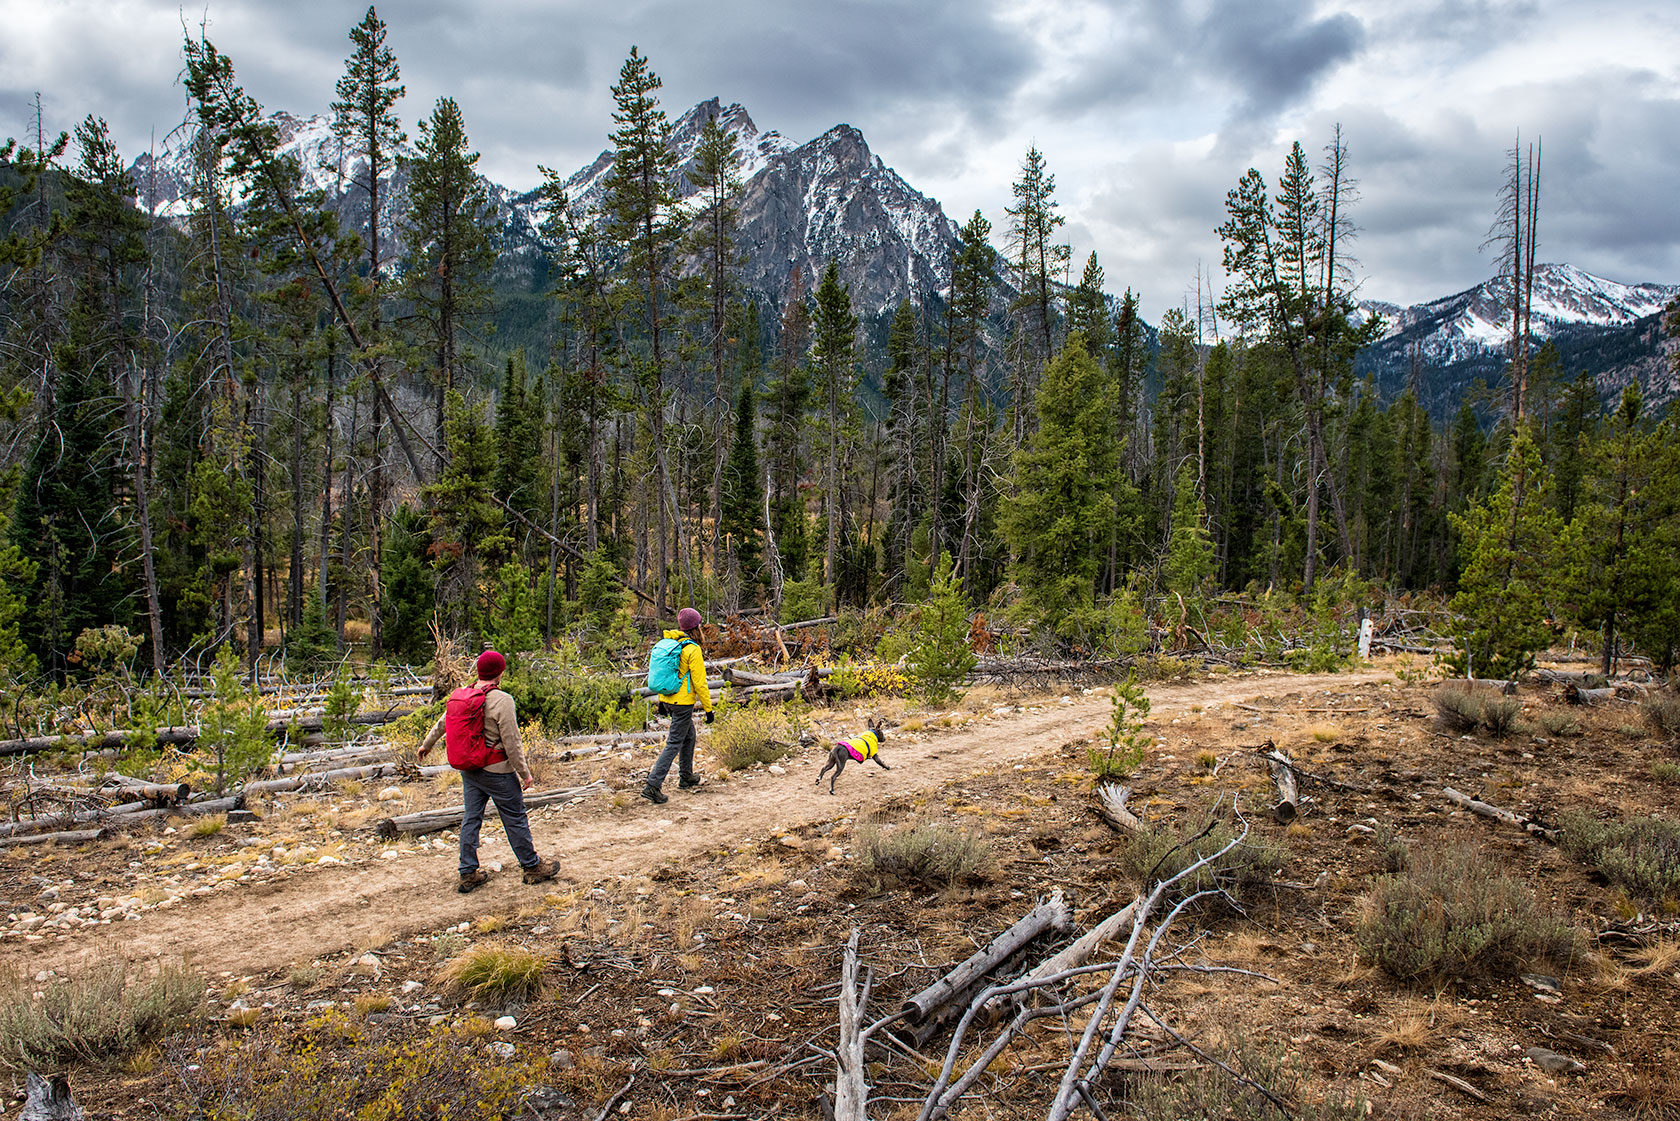 austin-trigg-patagonia-sawtooth-hiking-advenure-wilderness-forest-idaho-outside-lifestyle-day-fall-weather-mountains-stanley-lake.jpg